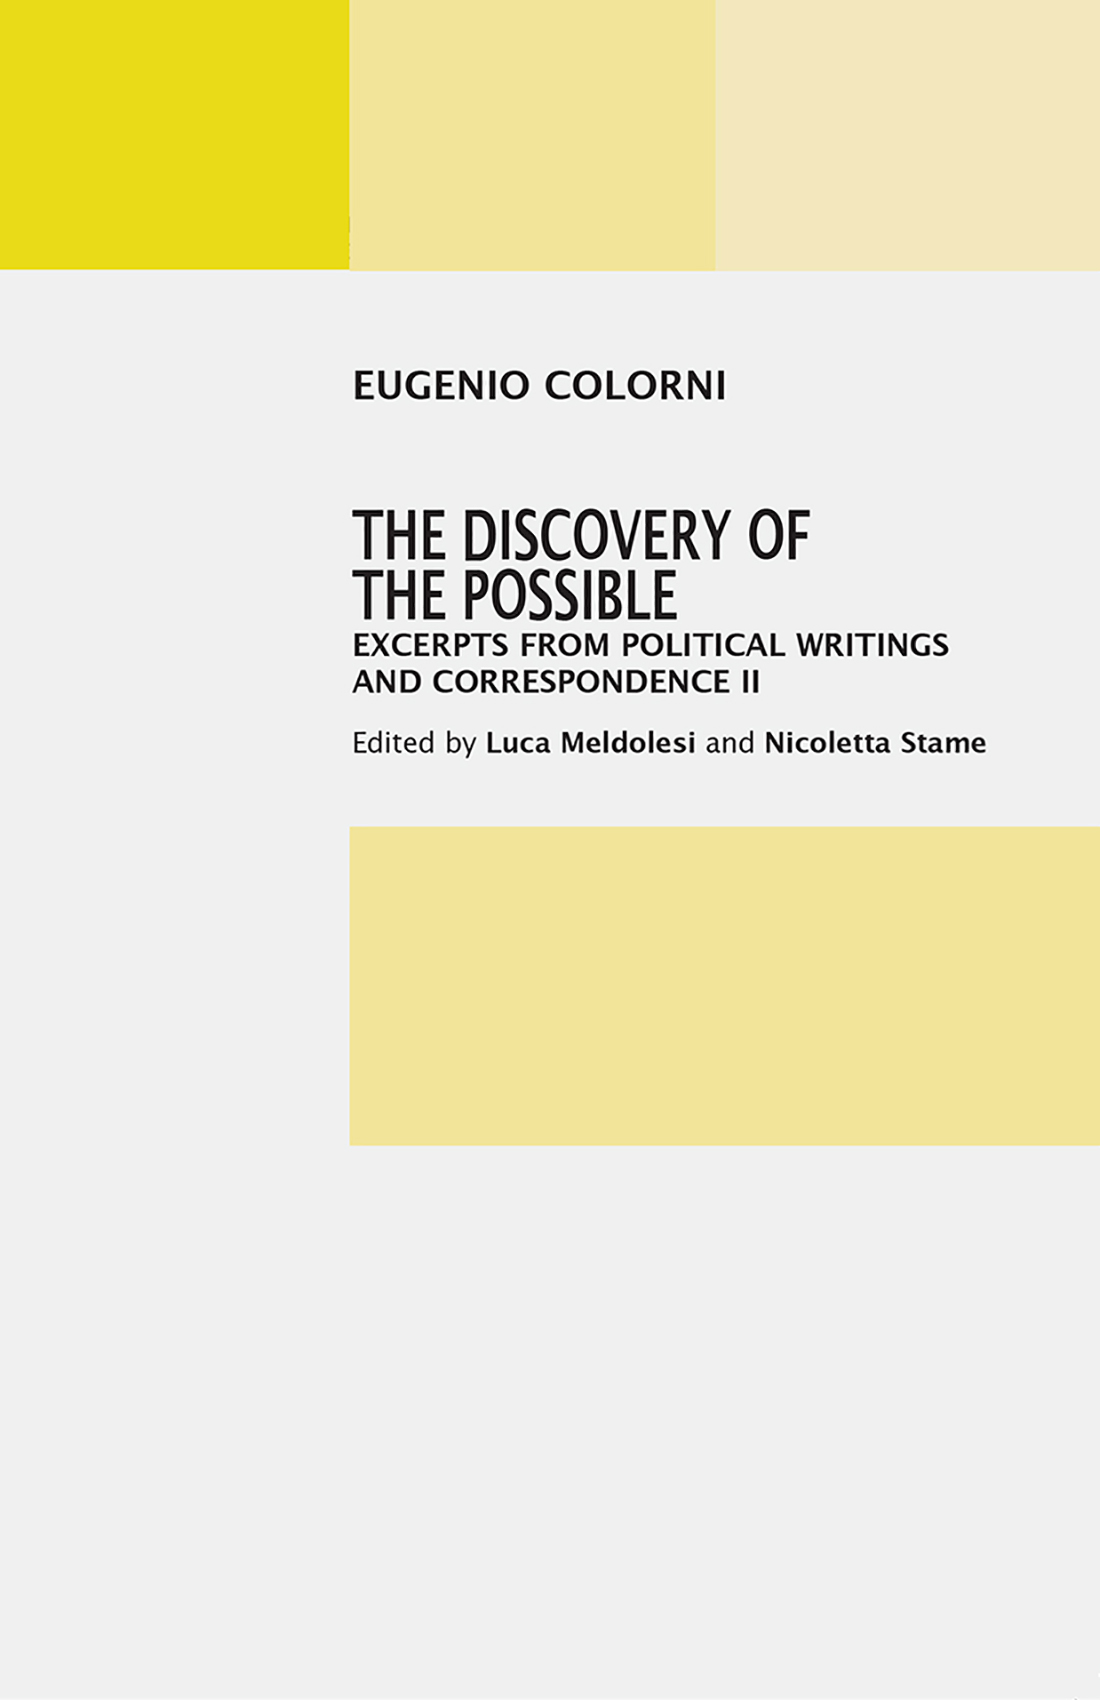 The Discovery of the Possible: Excerpts from Political Writings and Correspondence II